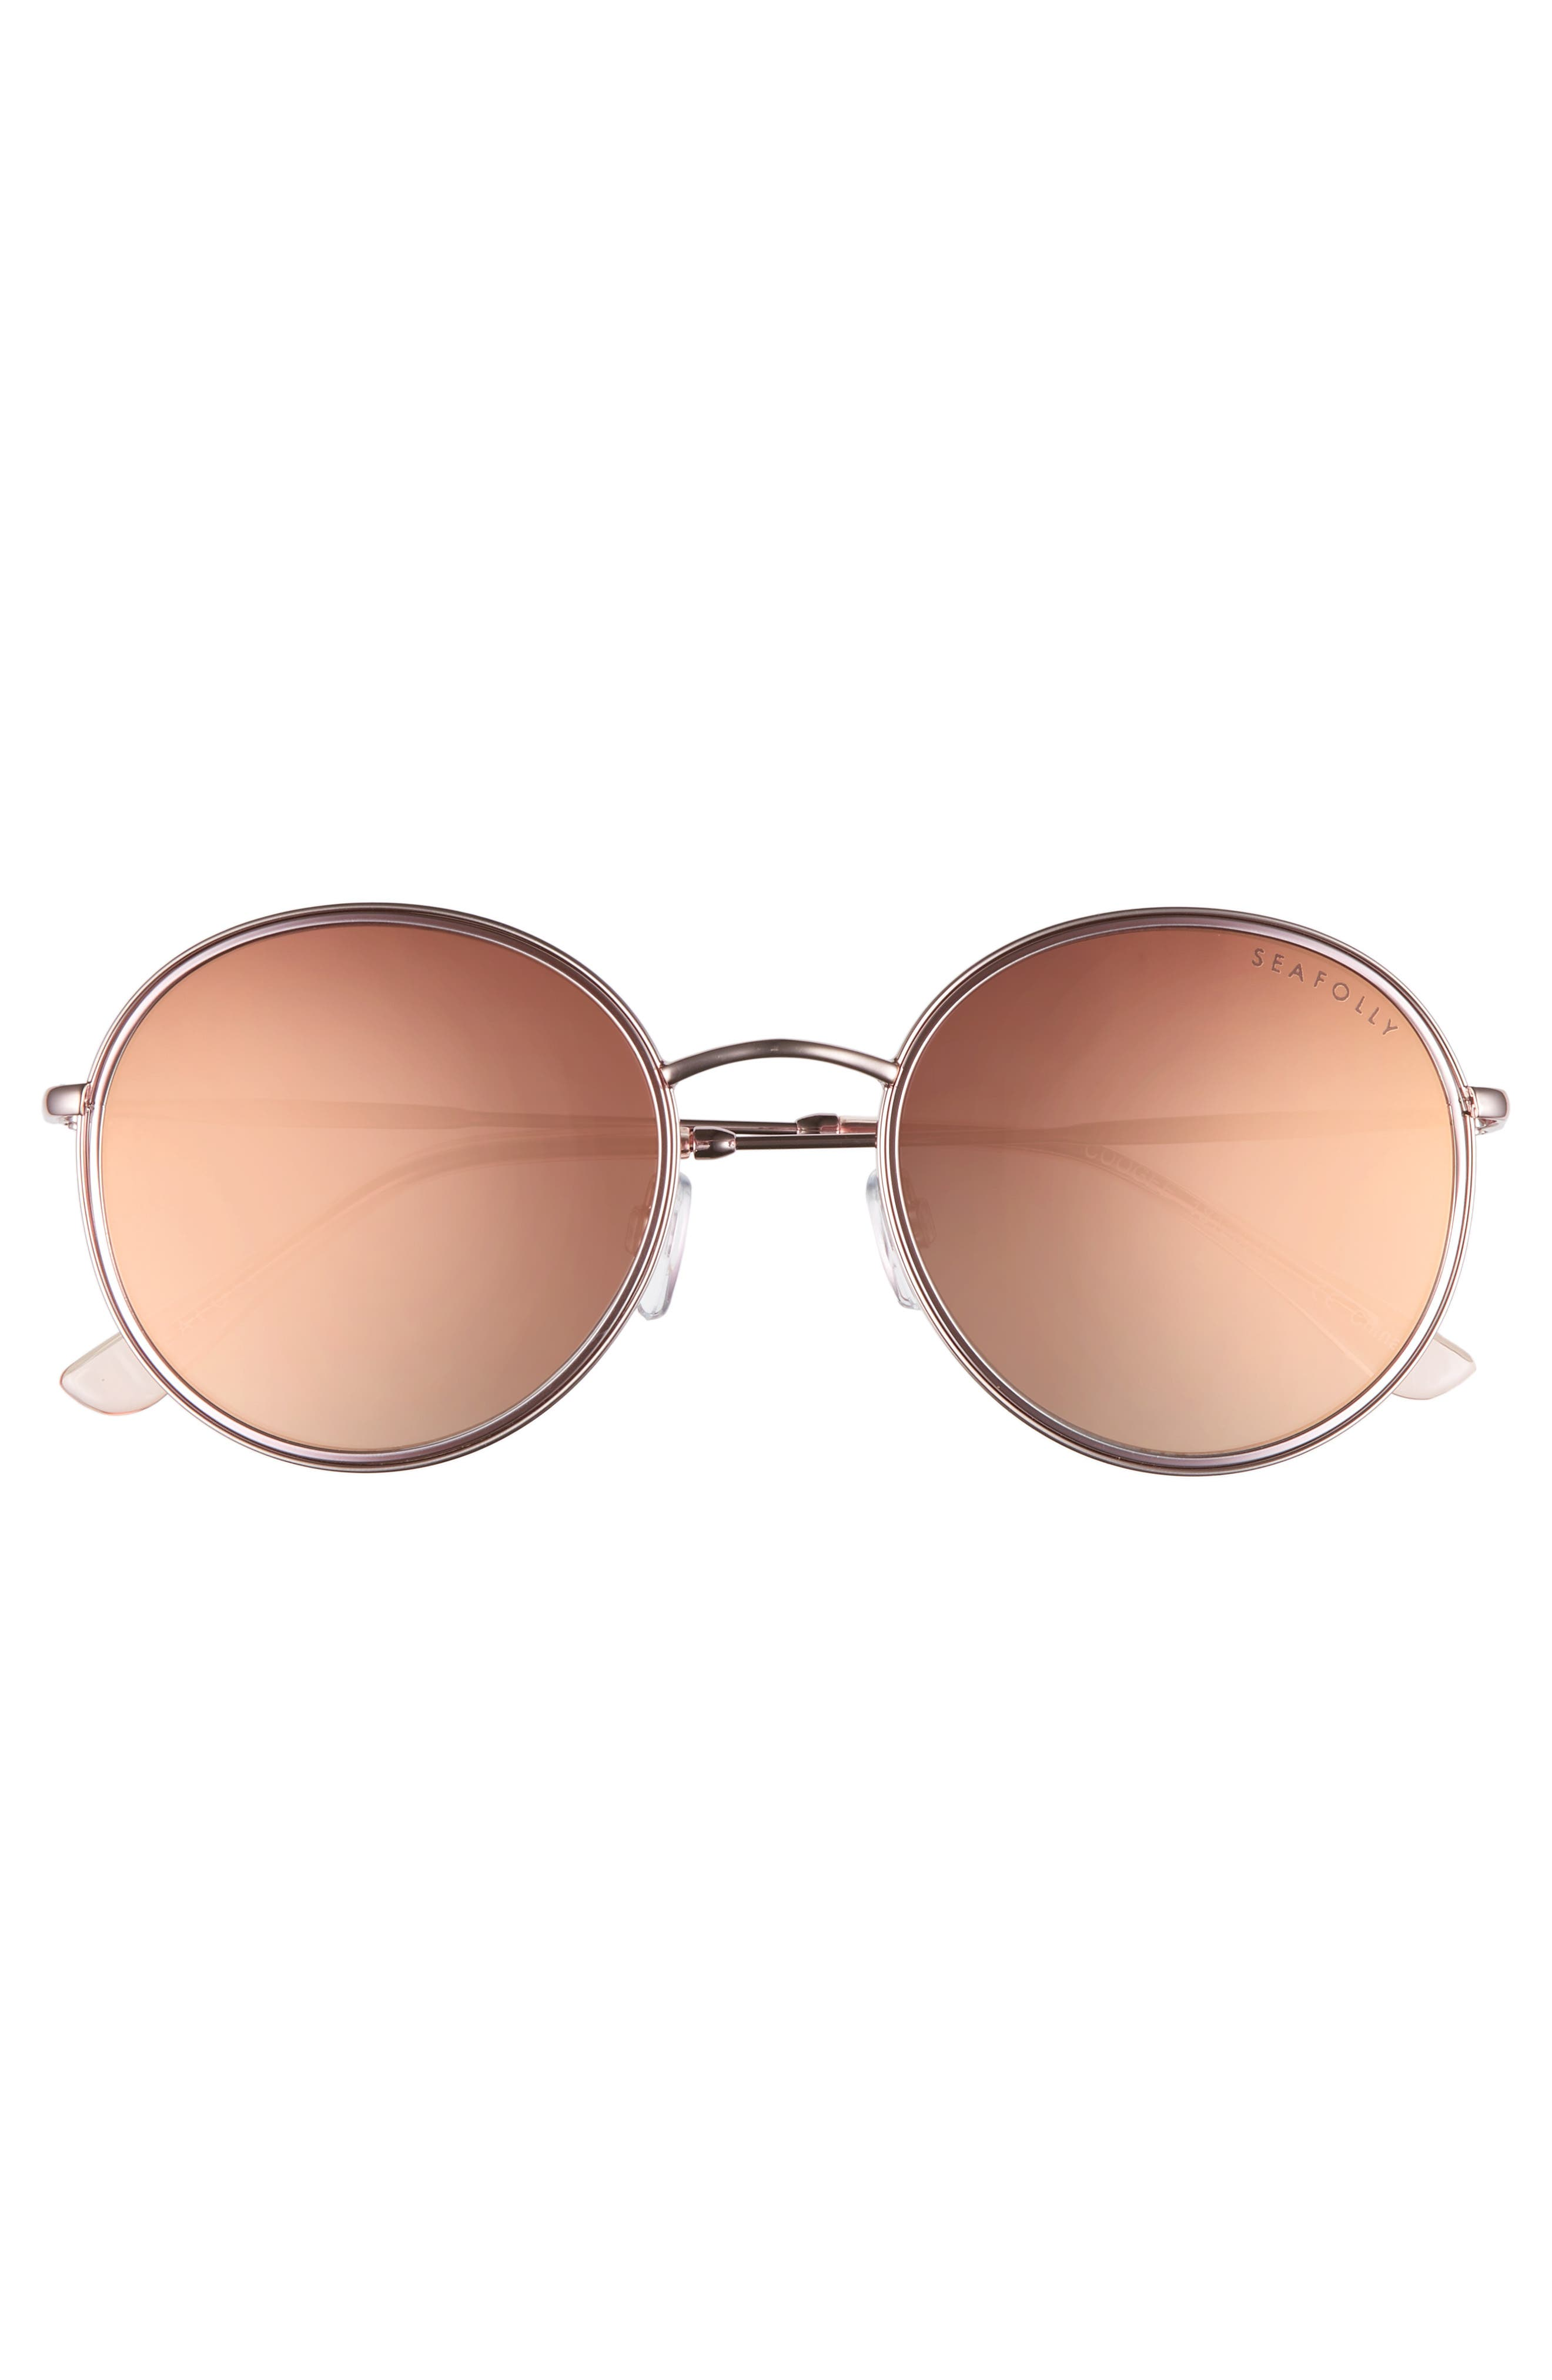 Coogee 54mm Round Sunglasses,                             Alternate thumbnail 3, color,                             Rose